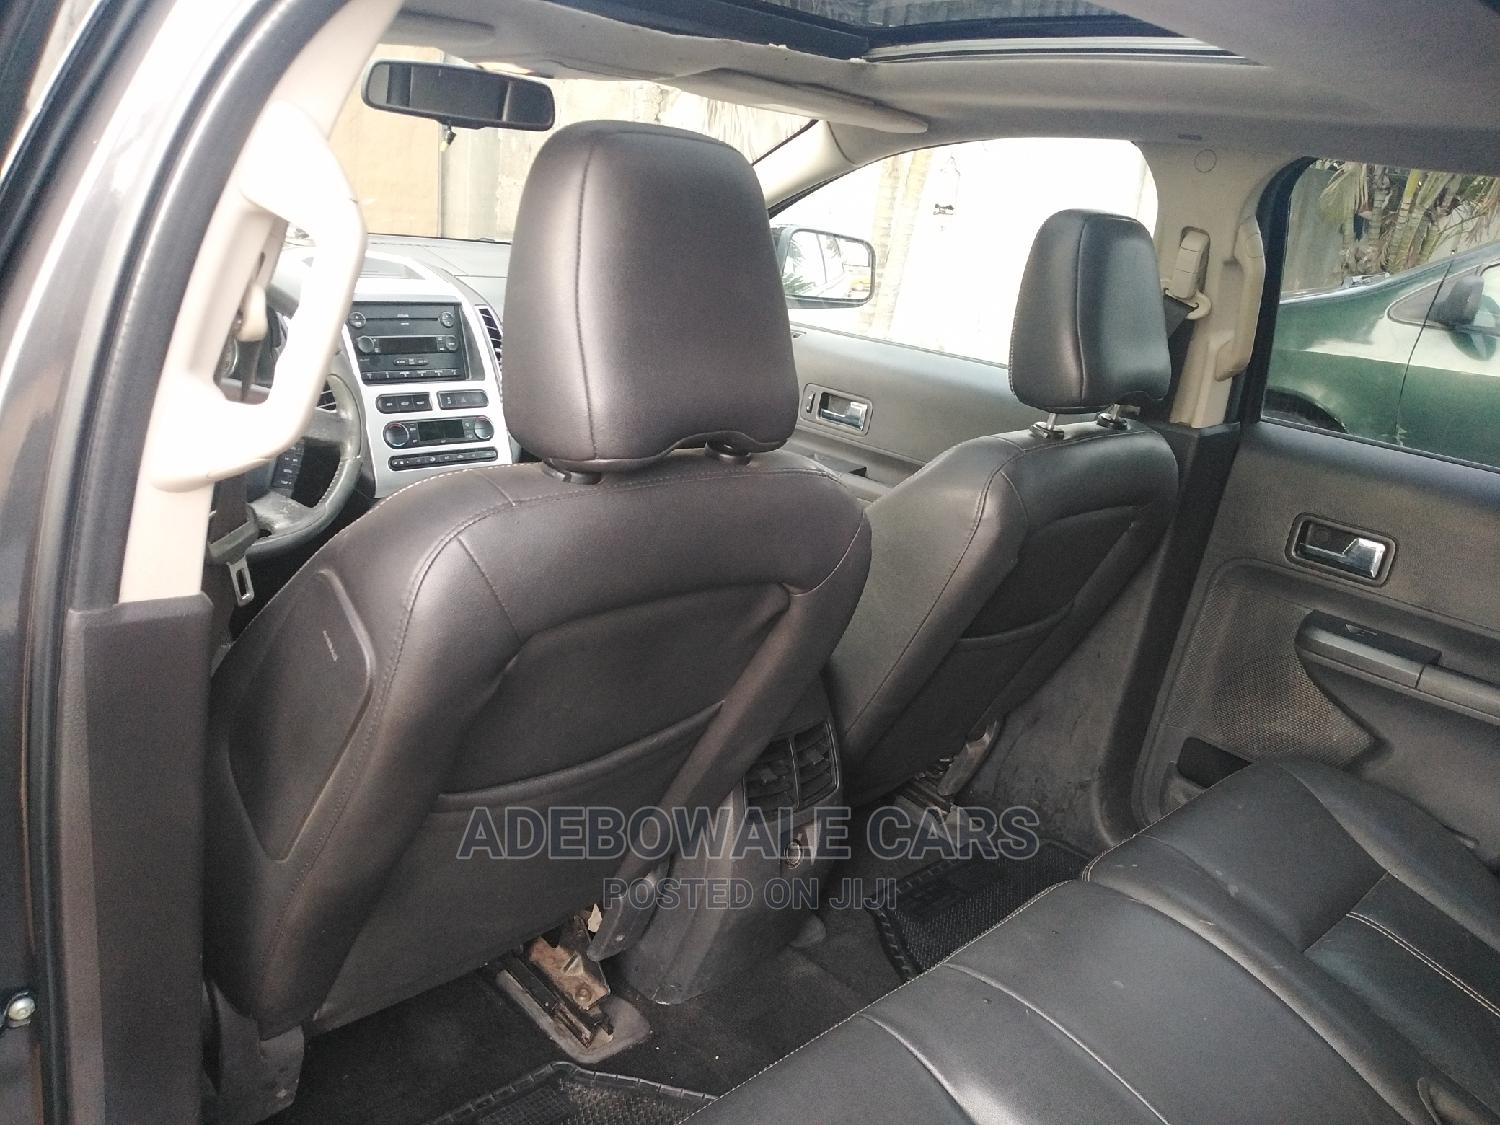 Ford Edge 2007 SE 4dr FWD (3.5L 6cyl 6A) Gray | Cars for sale in Ikorodu, Lagos State, Nigeria